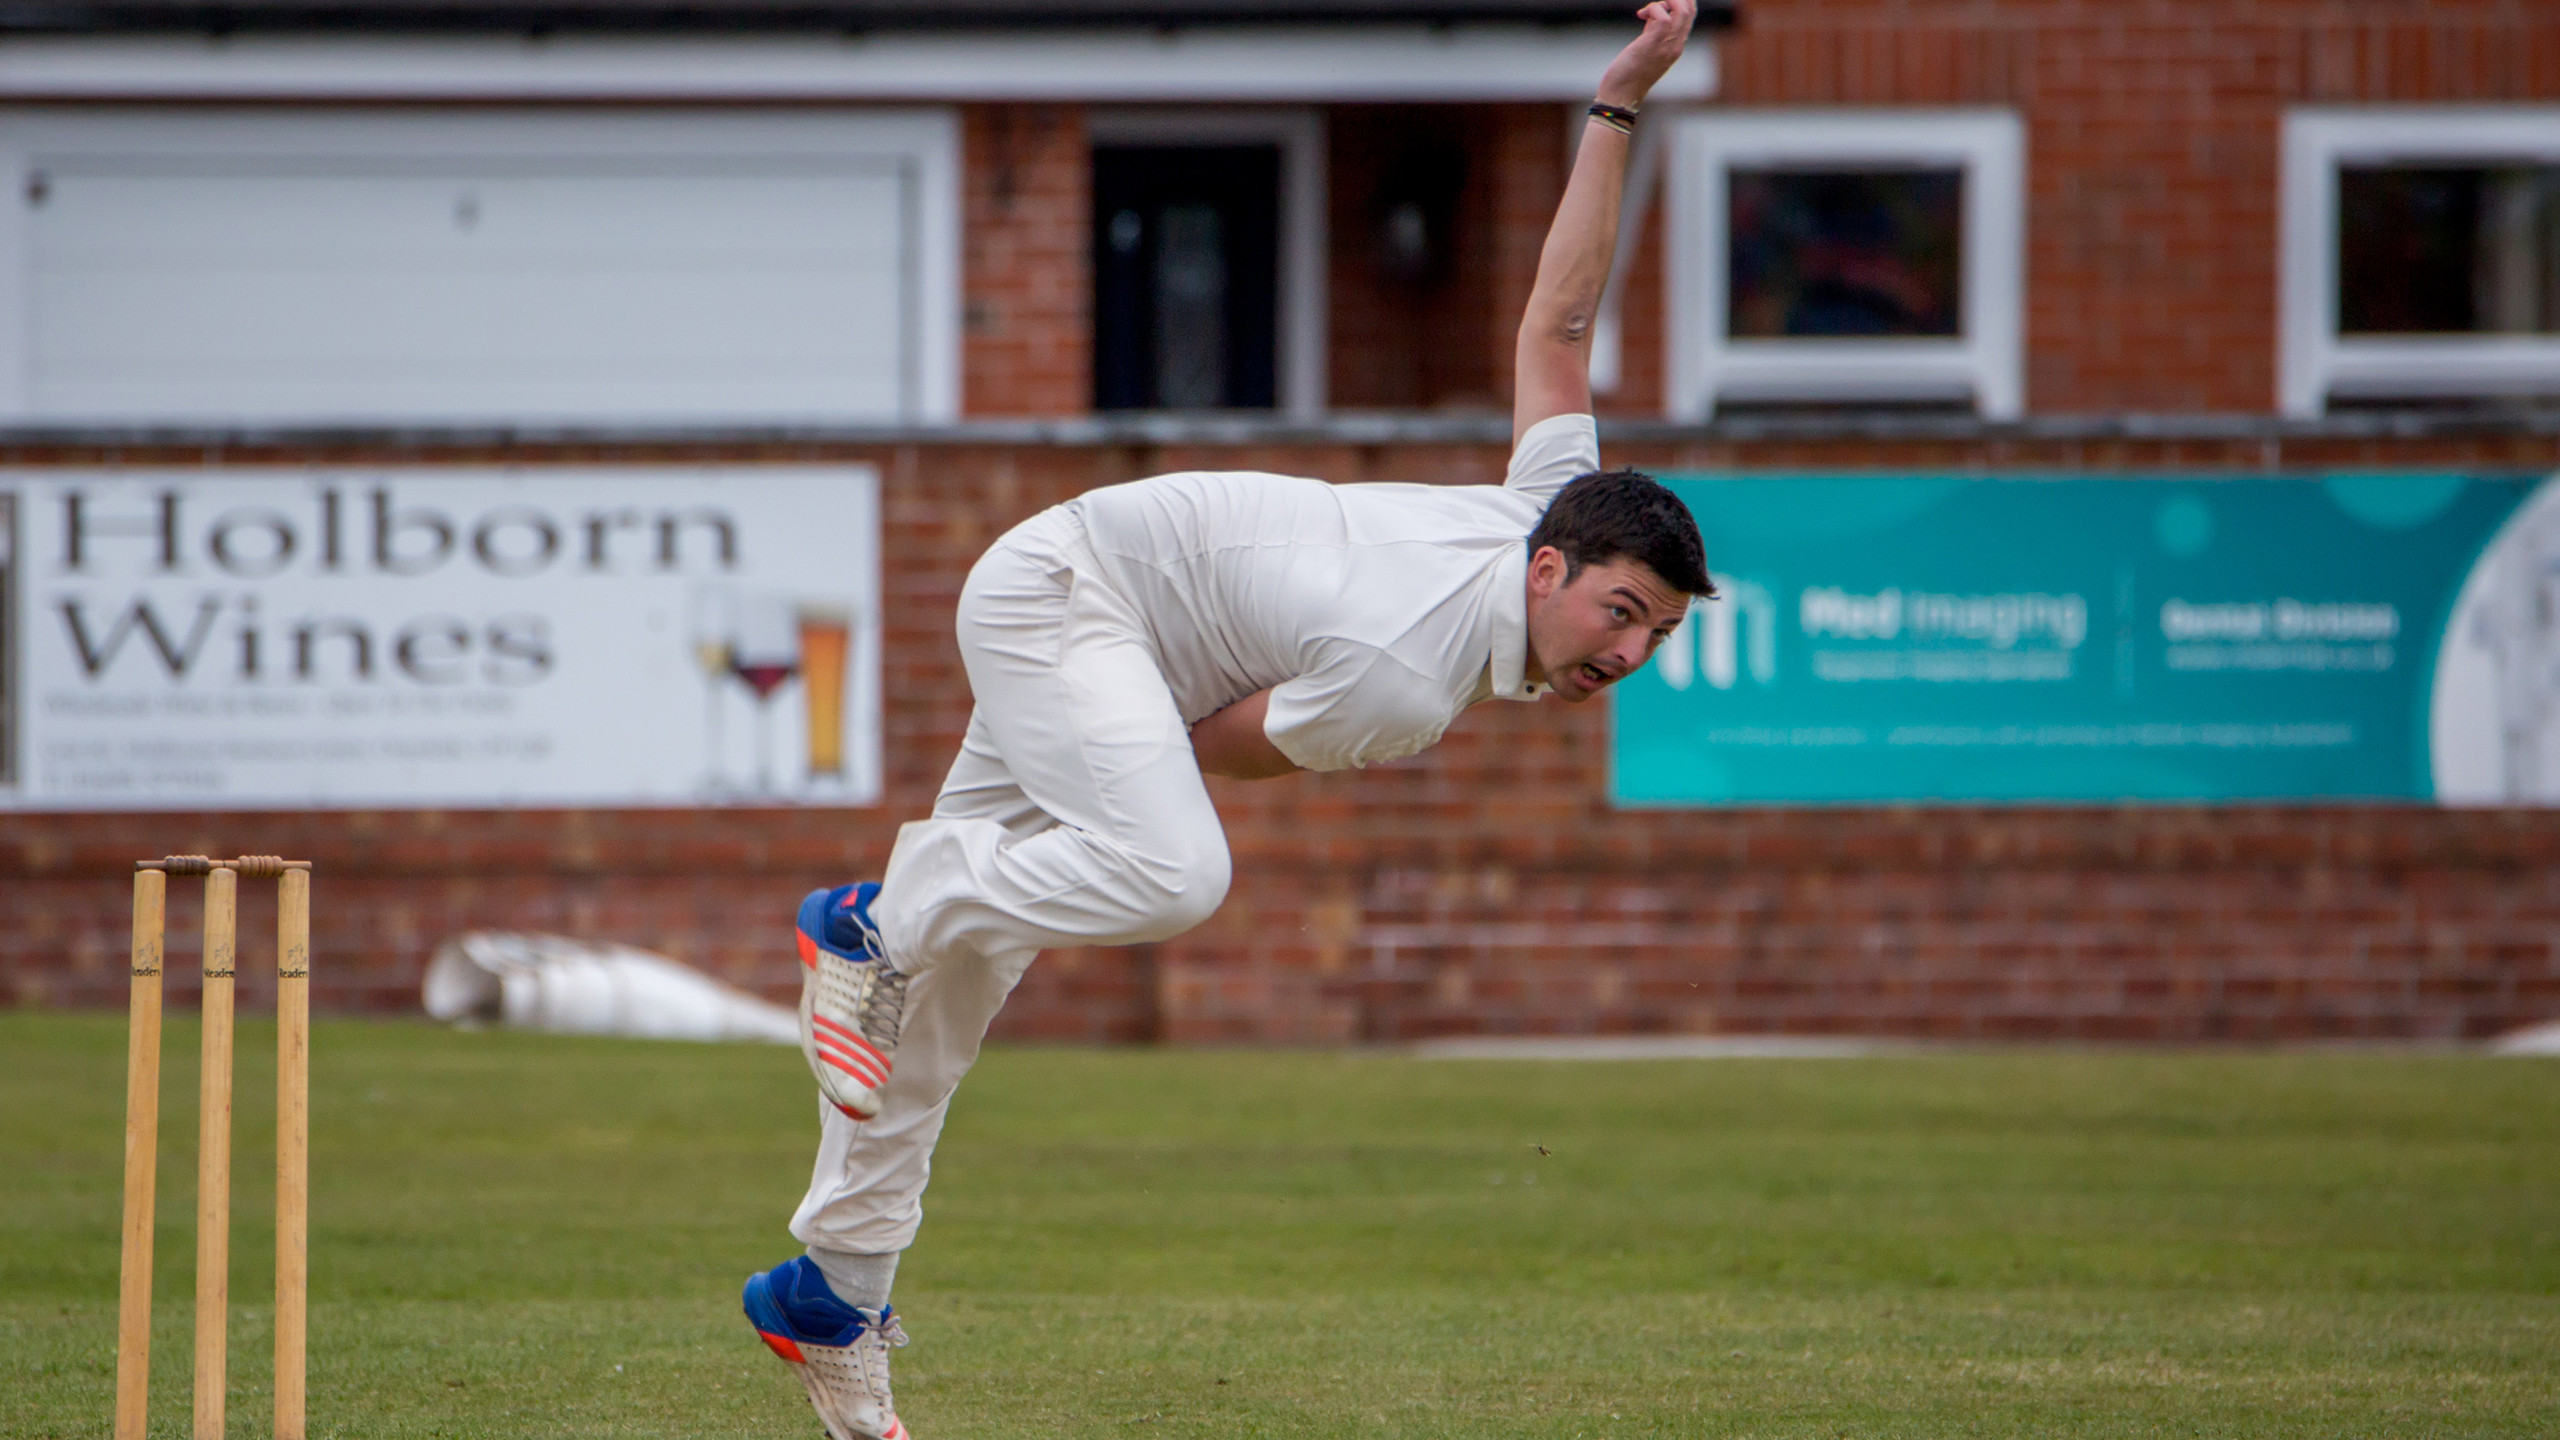 Ormskirk Bowling 1-1